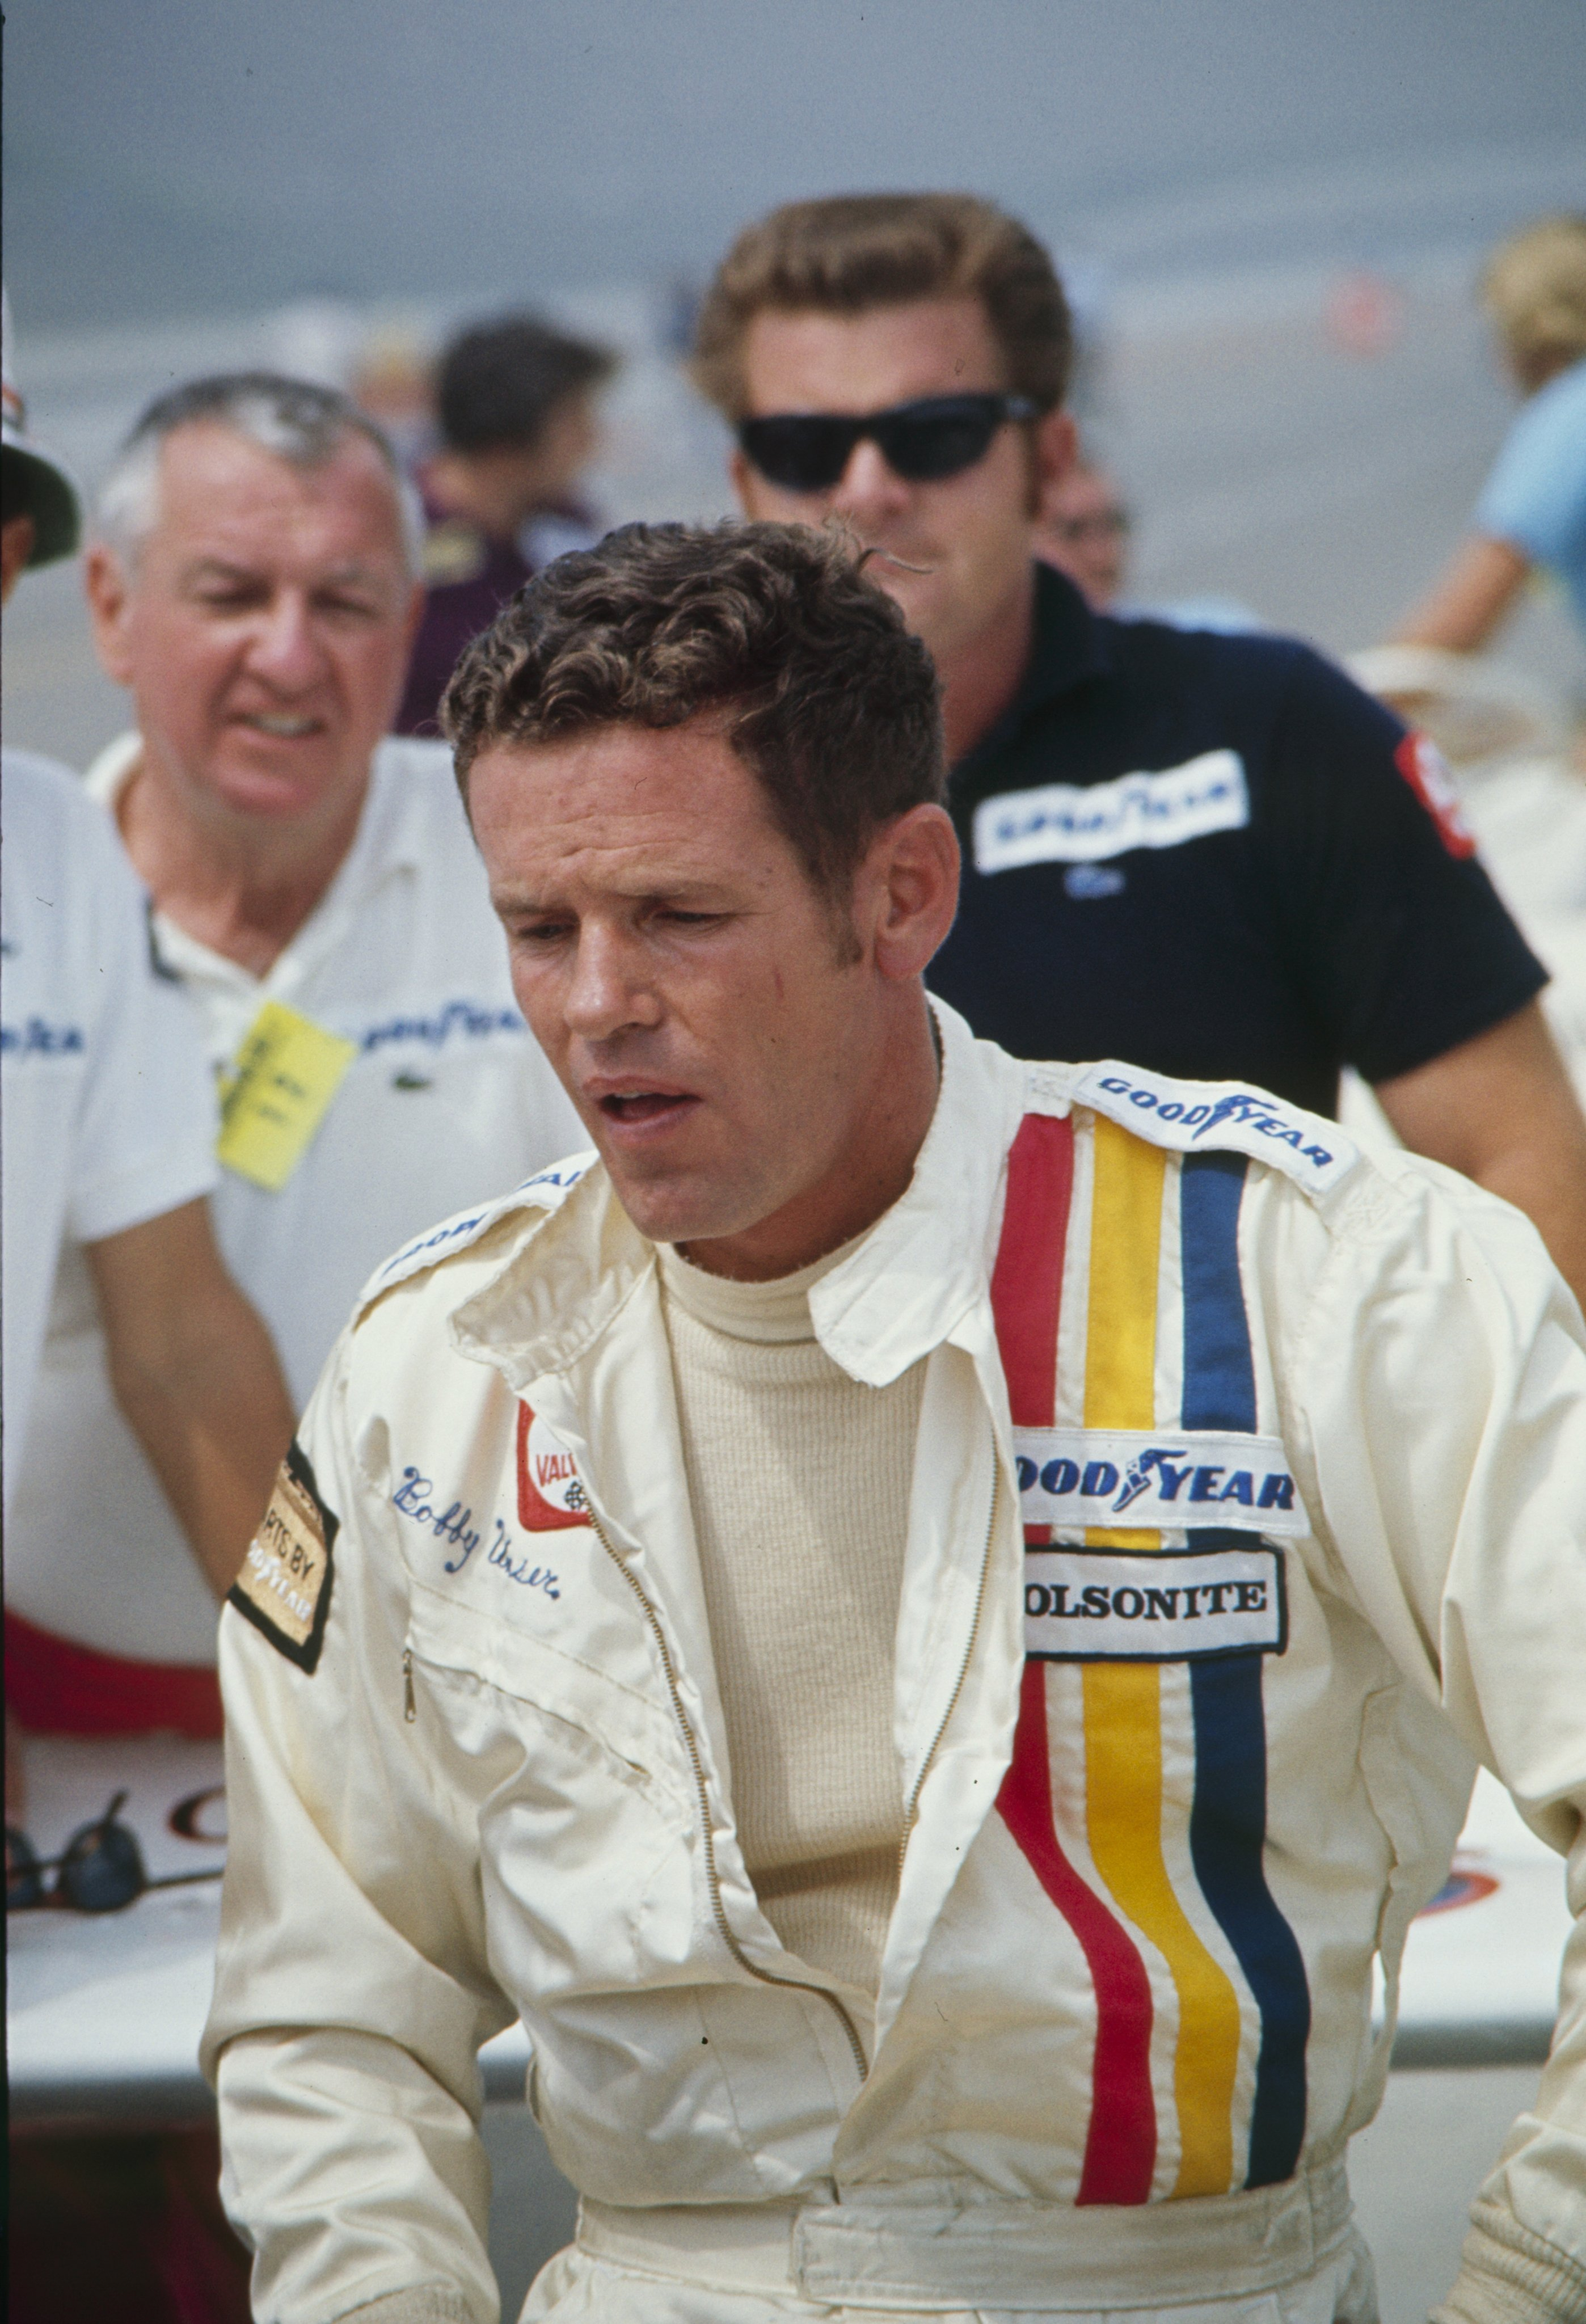 Bobby Unser of the Olsonite team sits by the pits at the California 500 Qualifying on August 30, 1972 | Photo: Bob D'Olivo & Pat Brollier|Ellen Griesedieck/The Enthusiast Network/Getty Images